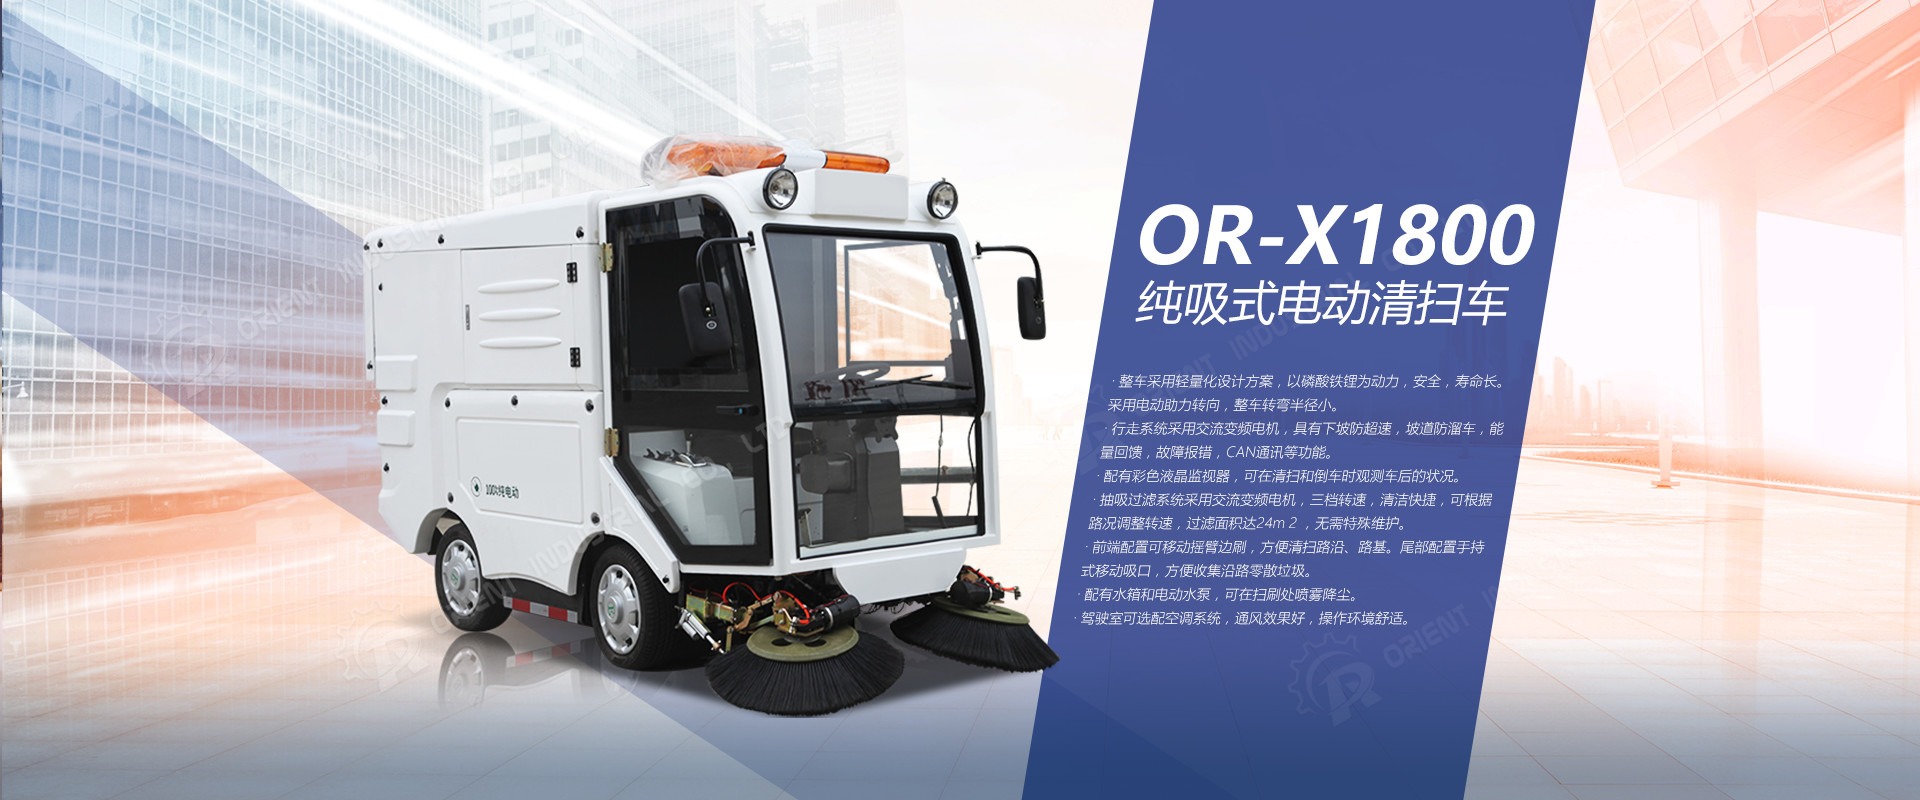 OR-X1800 Enclosed Cleaning Machine